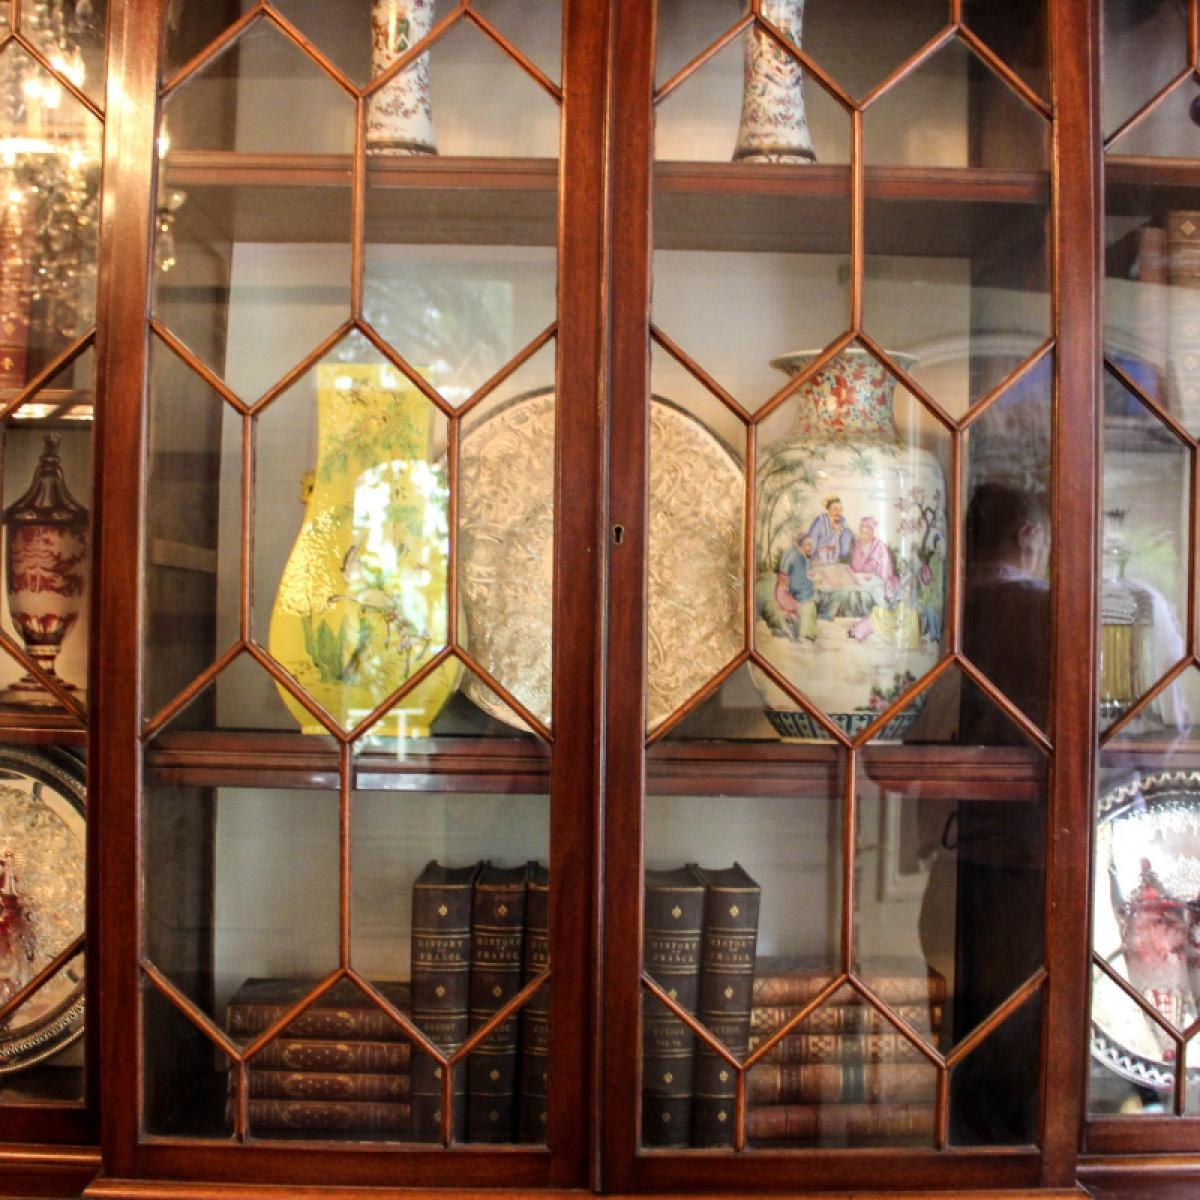 A cabinet with ornaments at St. James Hotel